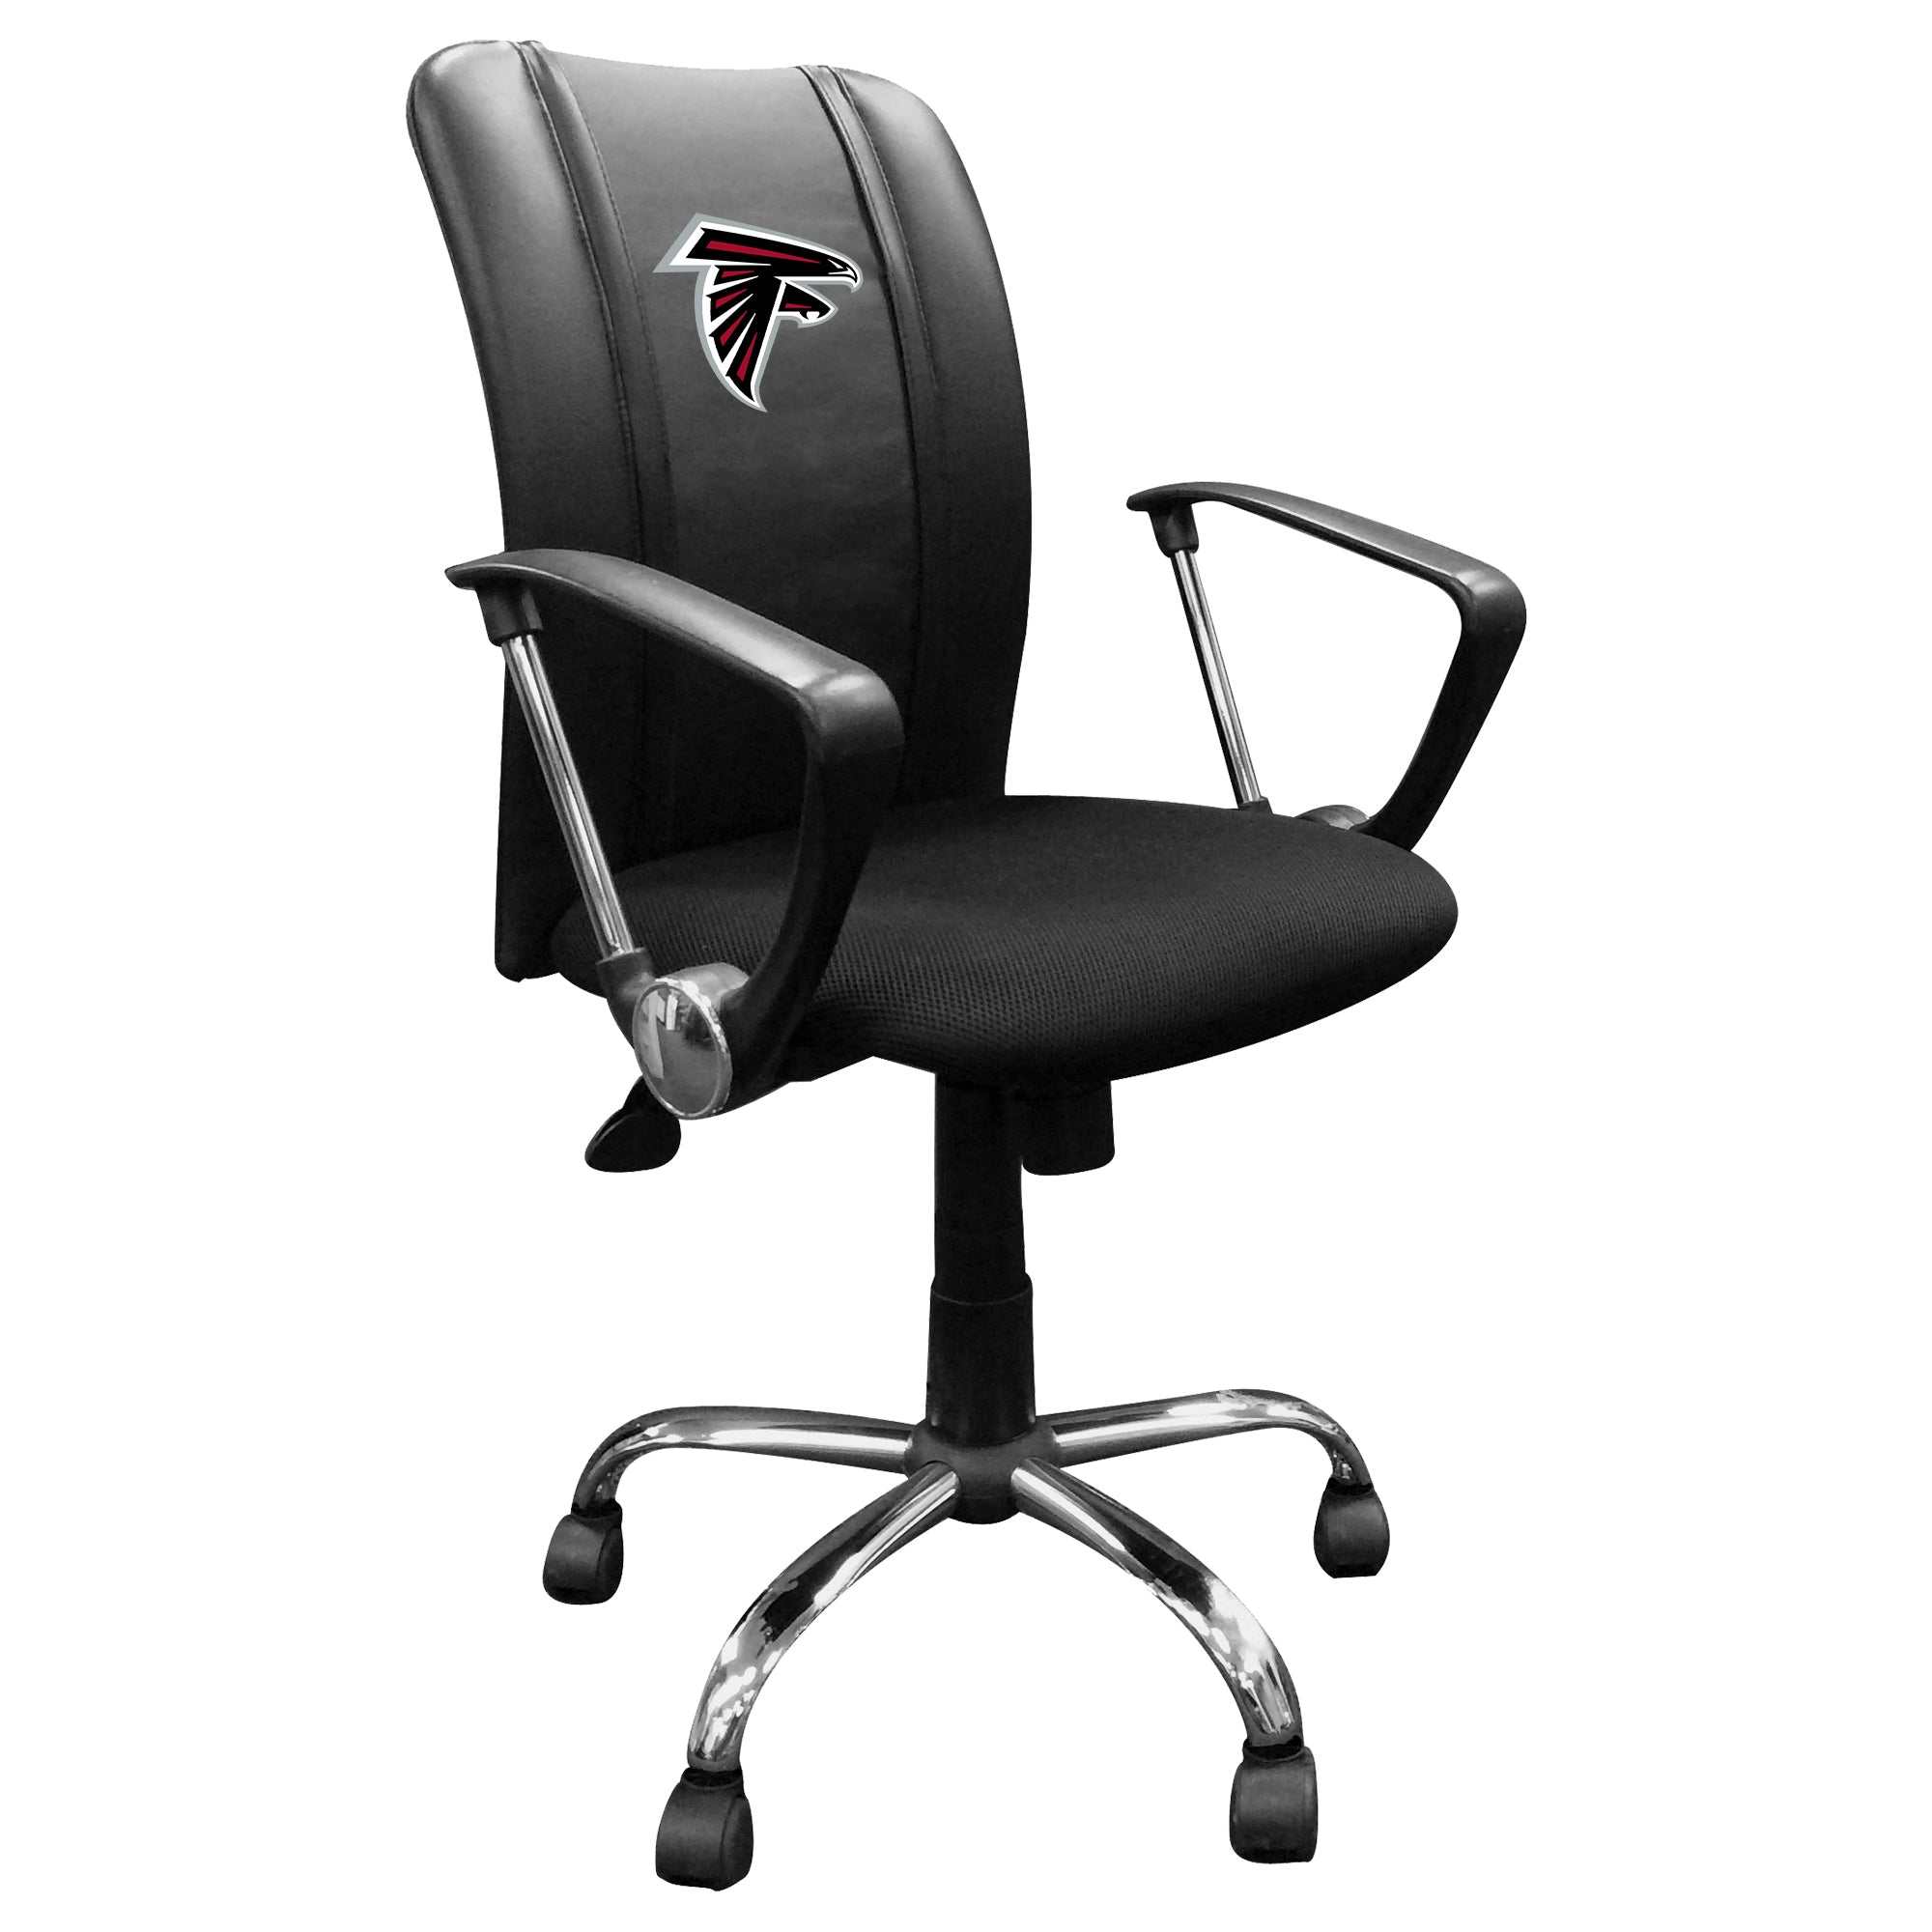 Curve Task Chair with Atlanta Falcons Primary Logo